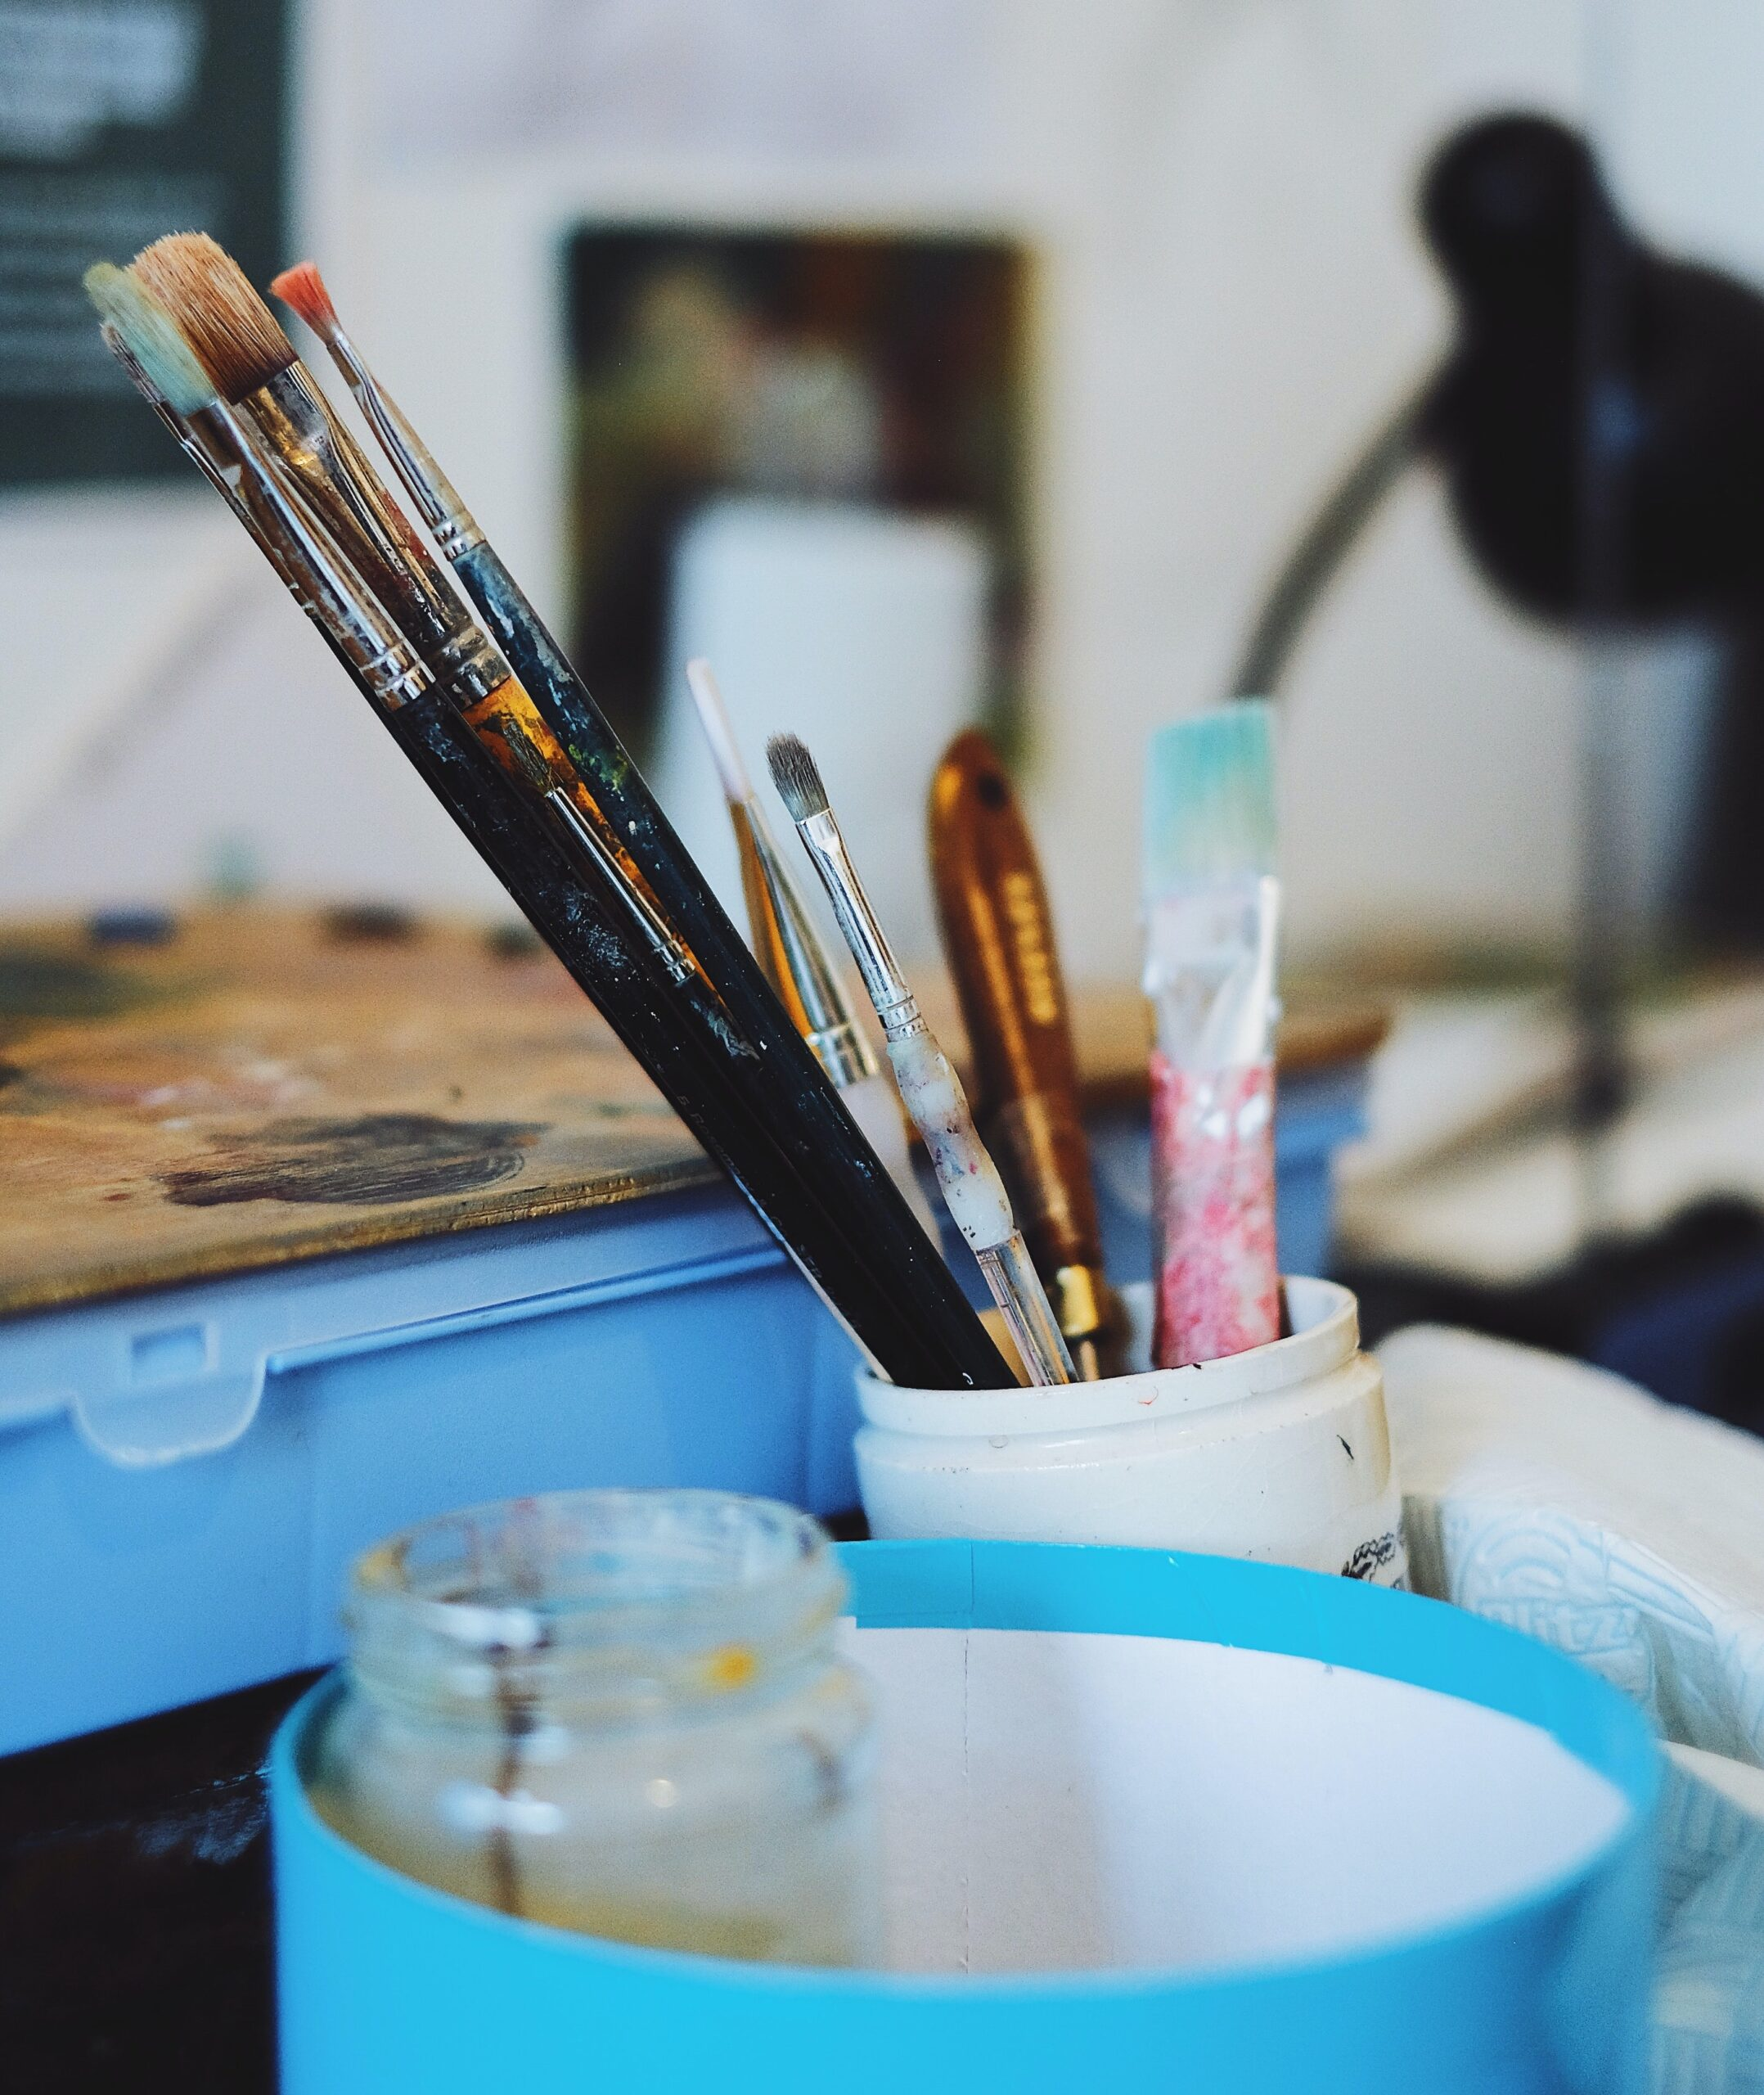 Artist studio with brushes